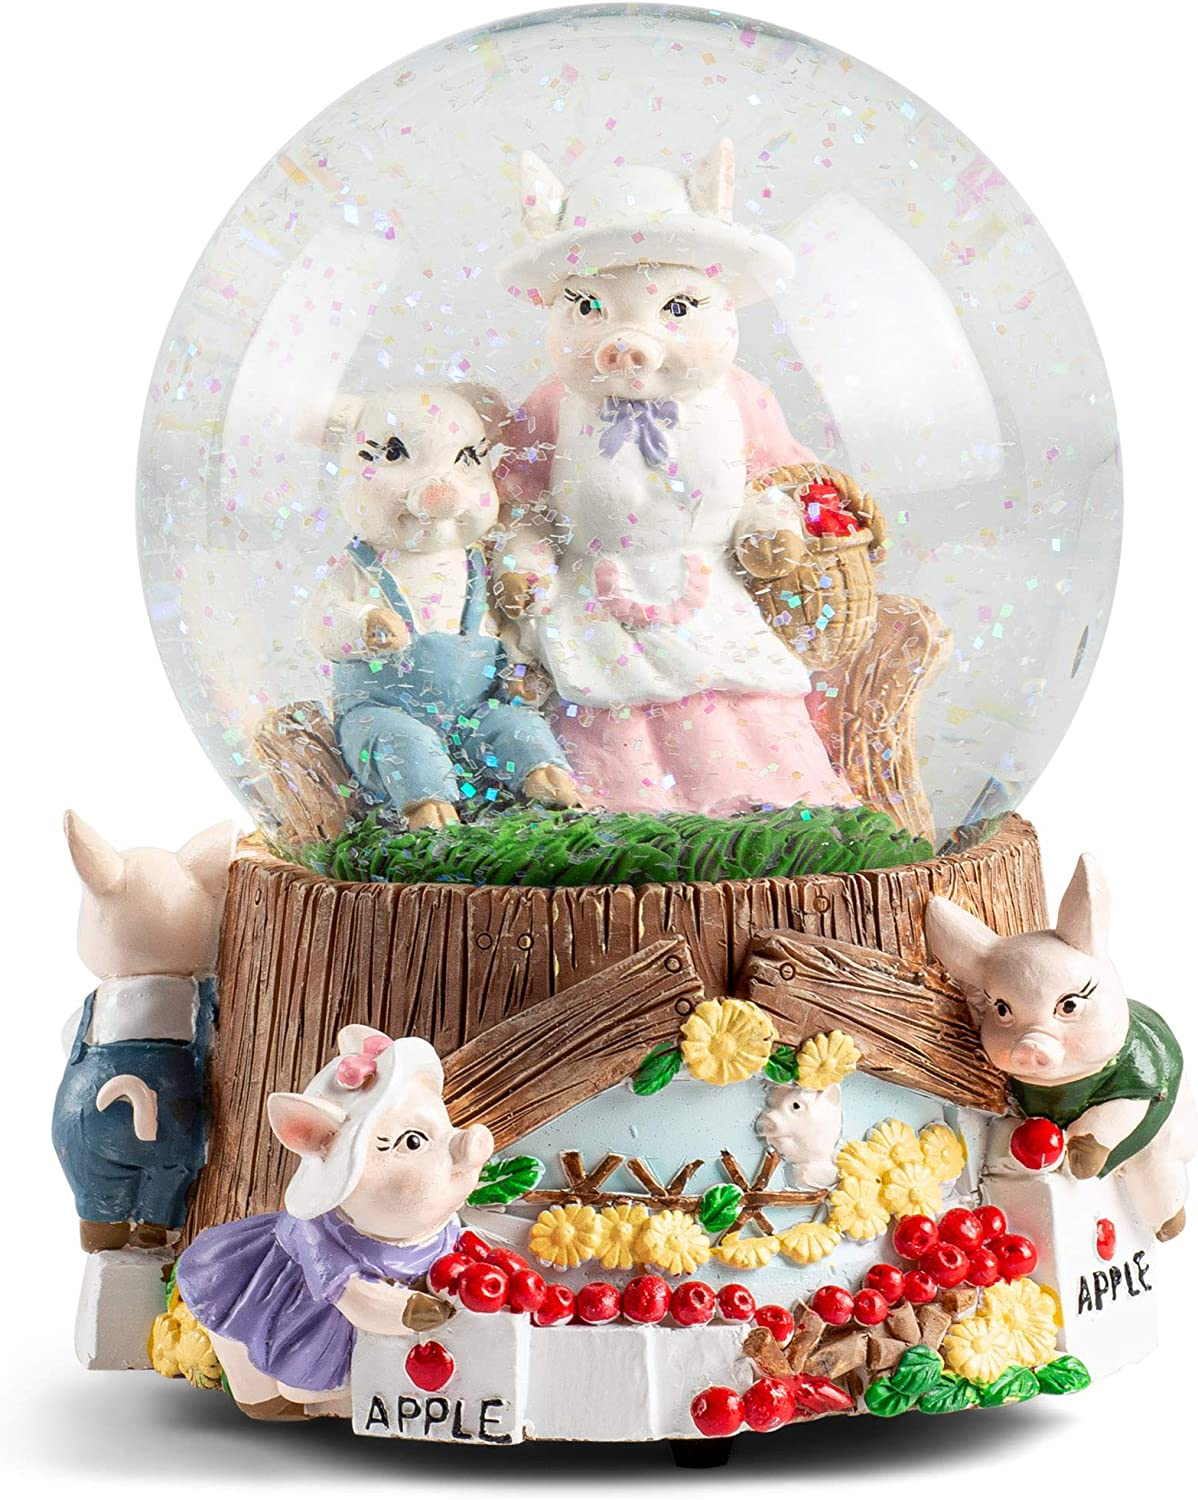 Elanze Designs Momma Pigs and Piglets Figurine 100MM Water Globe Plays Tune Take Me Home, Country Roads